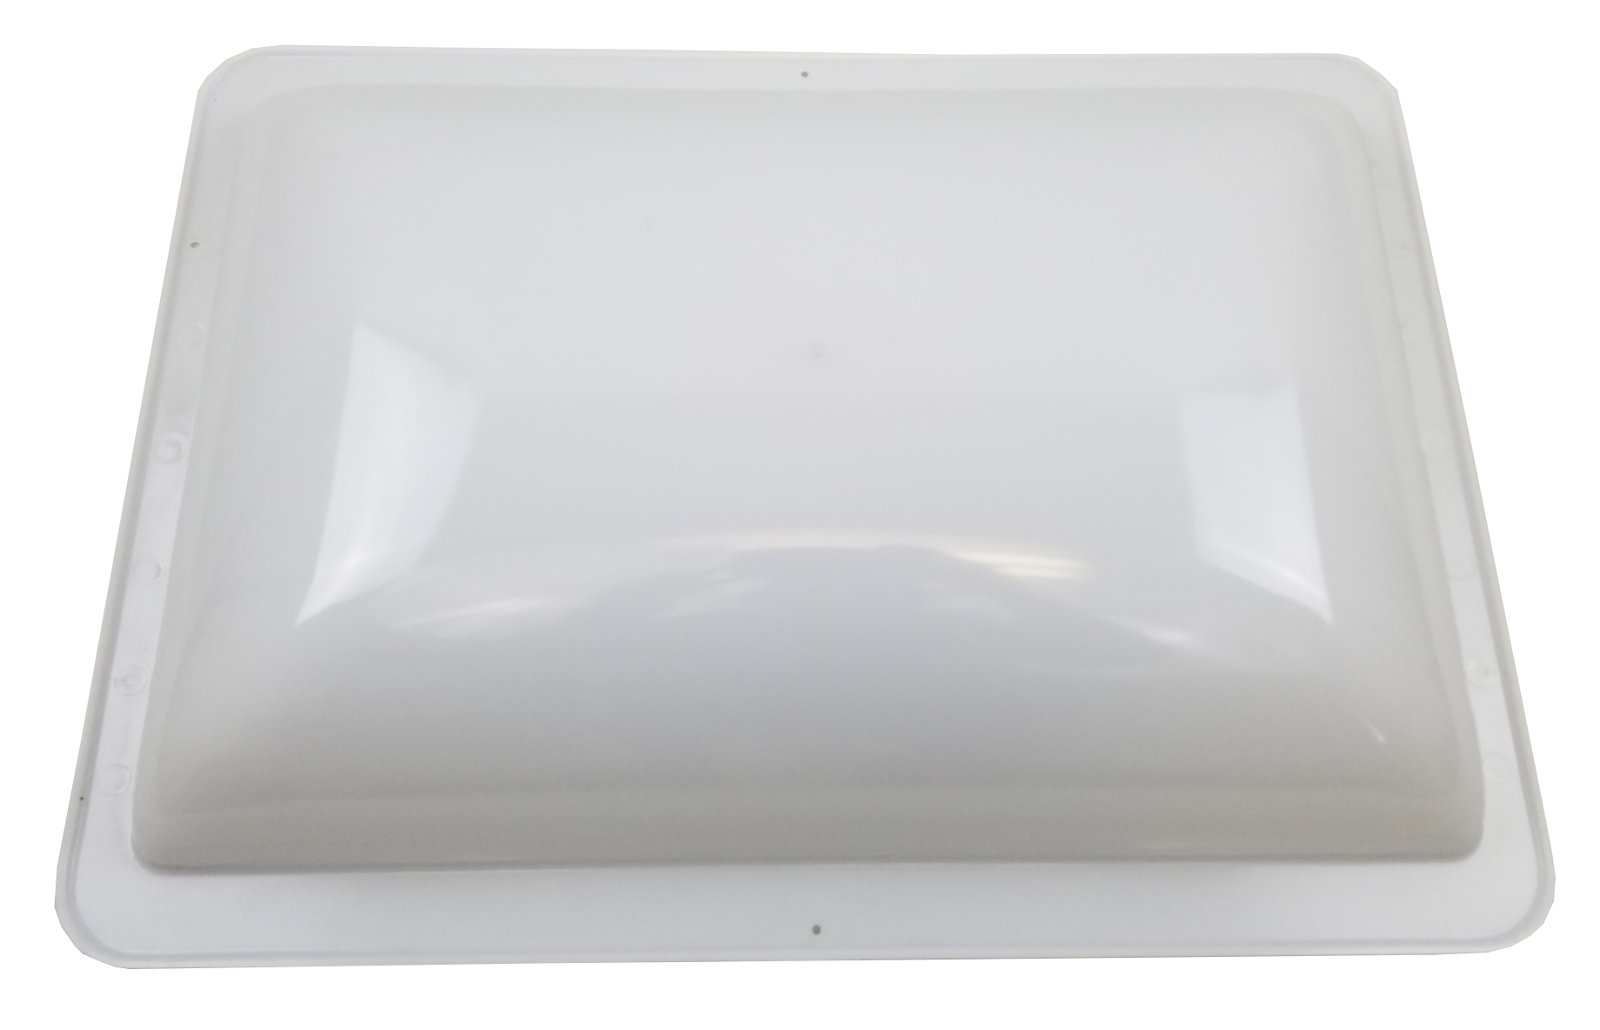 Class A Customs Premium Heavy Duty 17 x 24 rv Interior Replacement Skylight White Plastic roof Trailer by Class A Customs